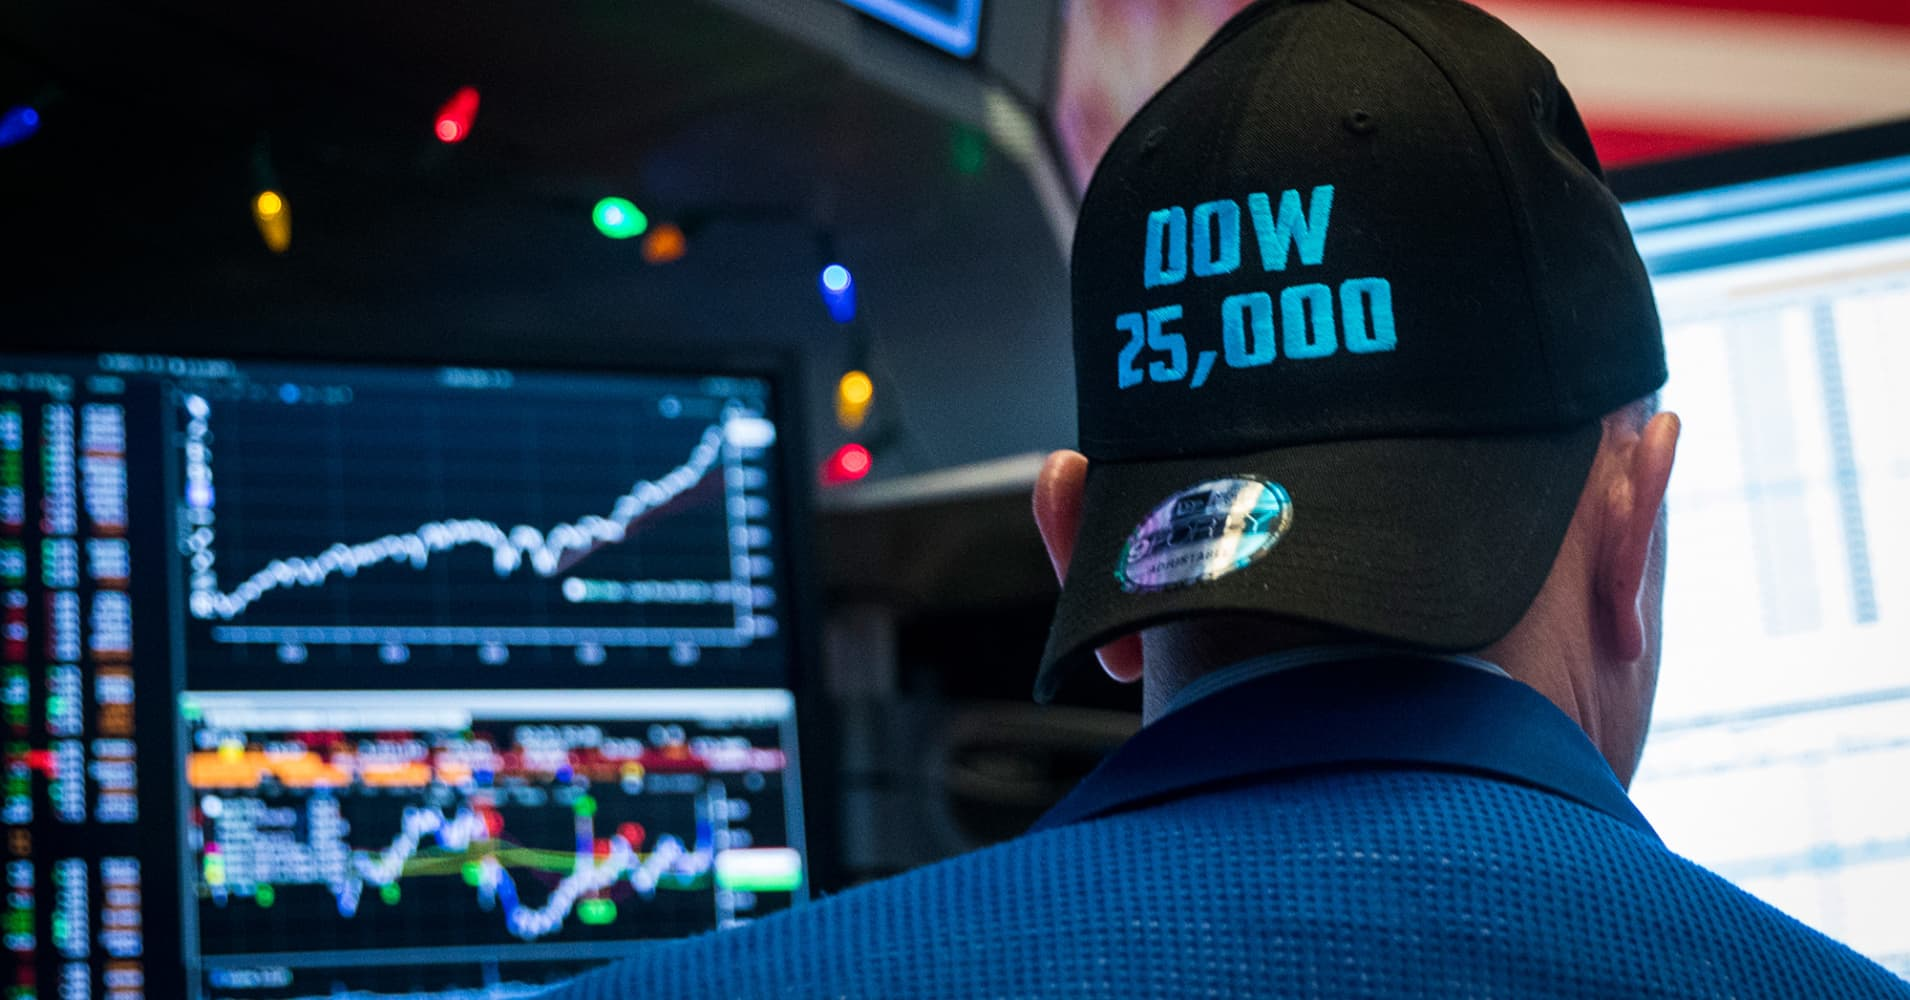 Stock market optimism from pros reaches highest level in nearly 32 years